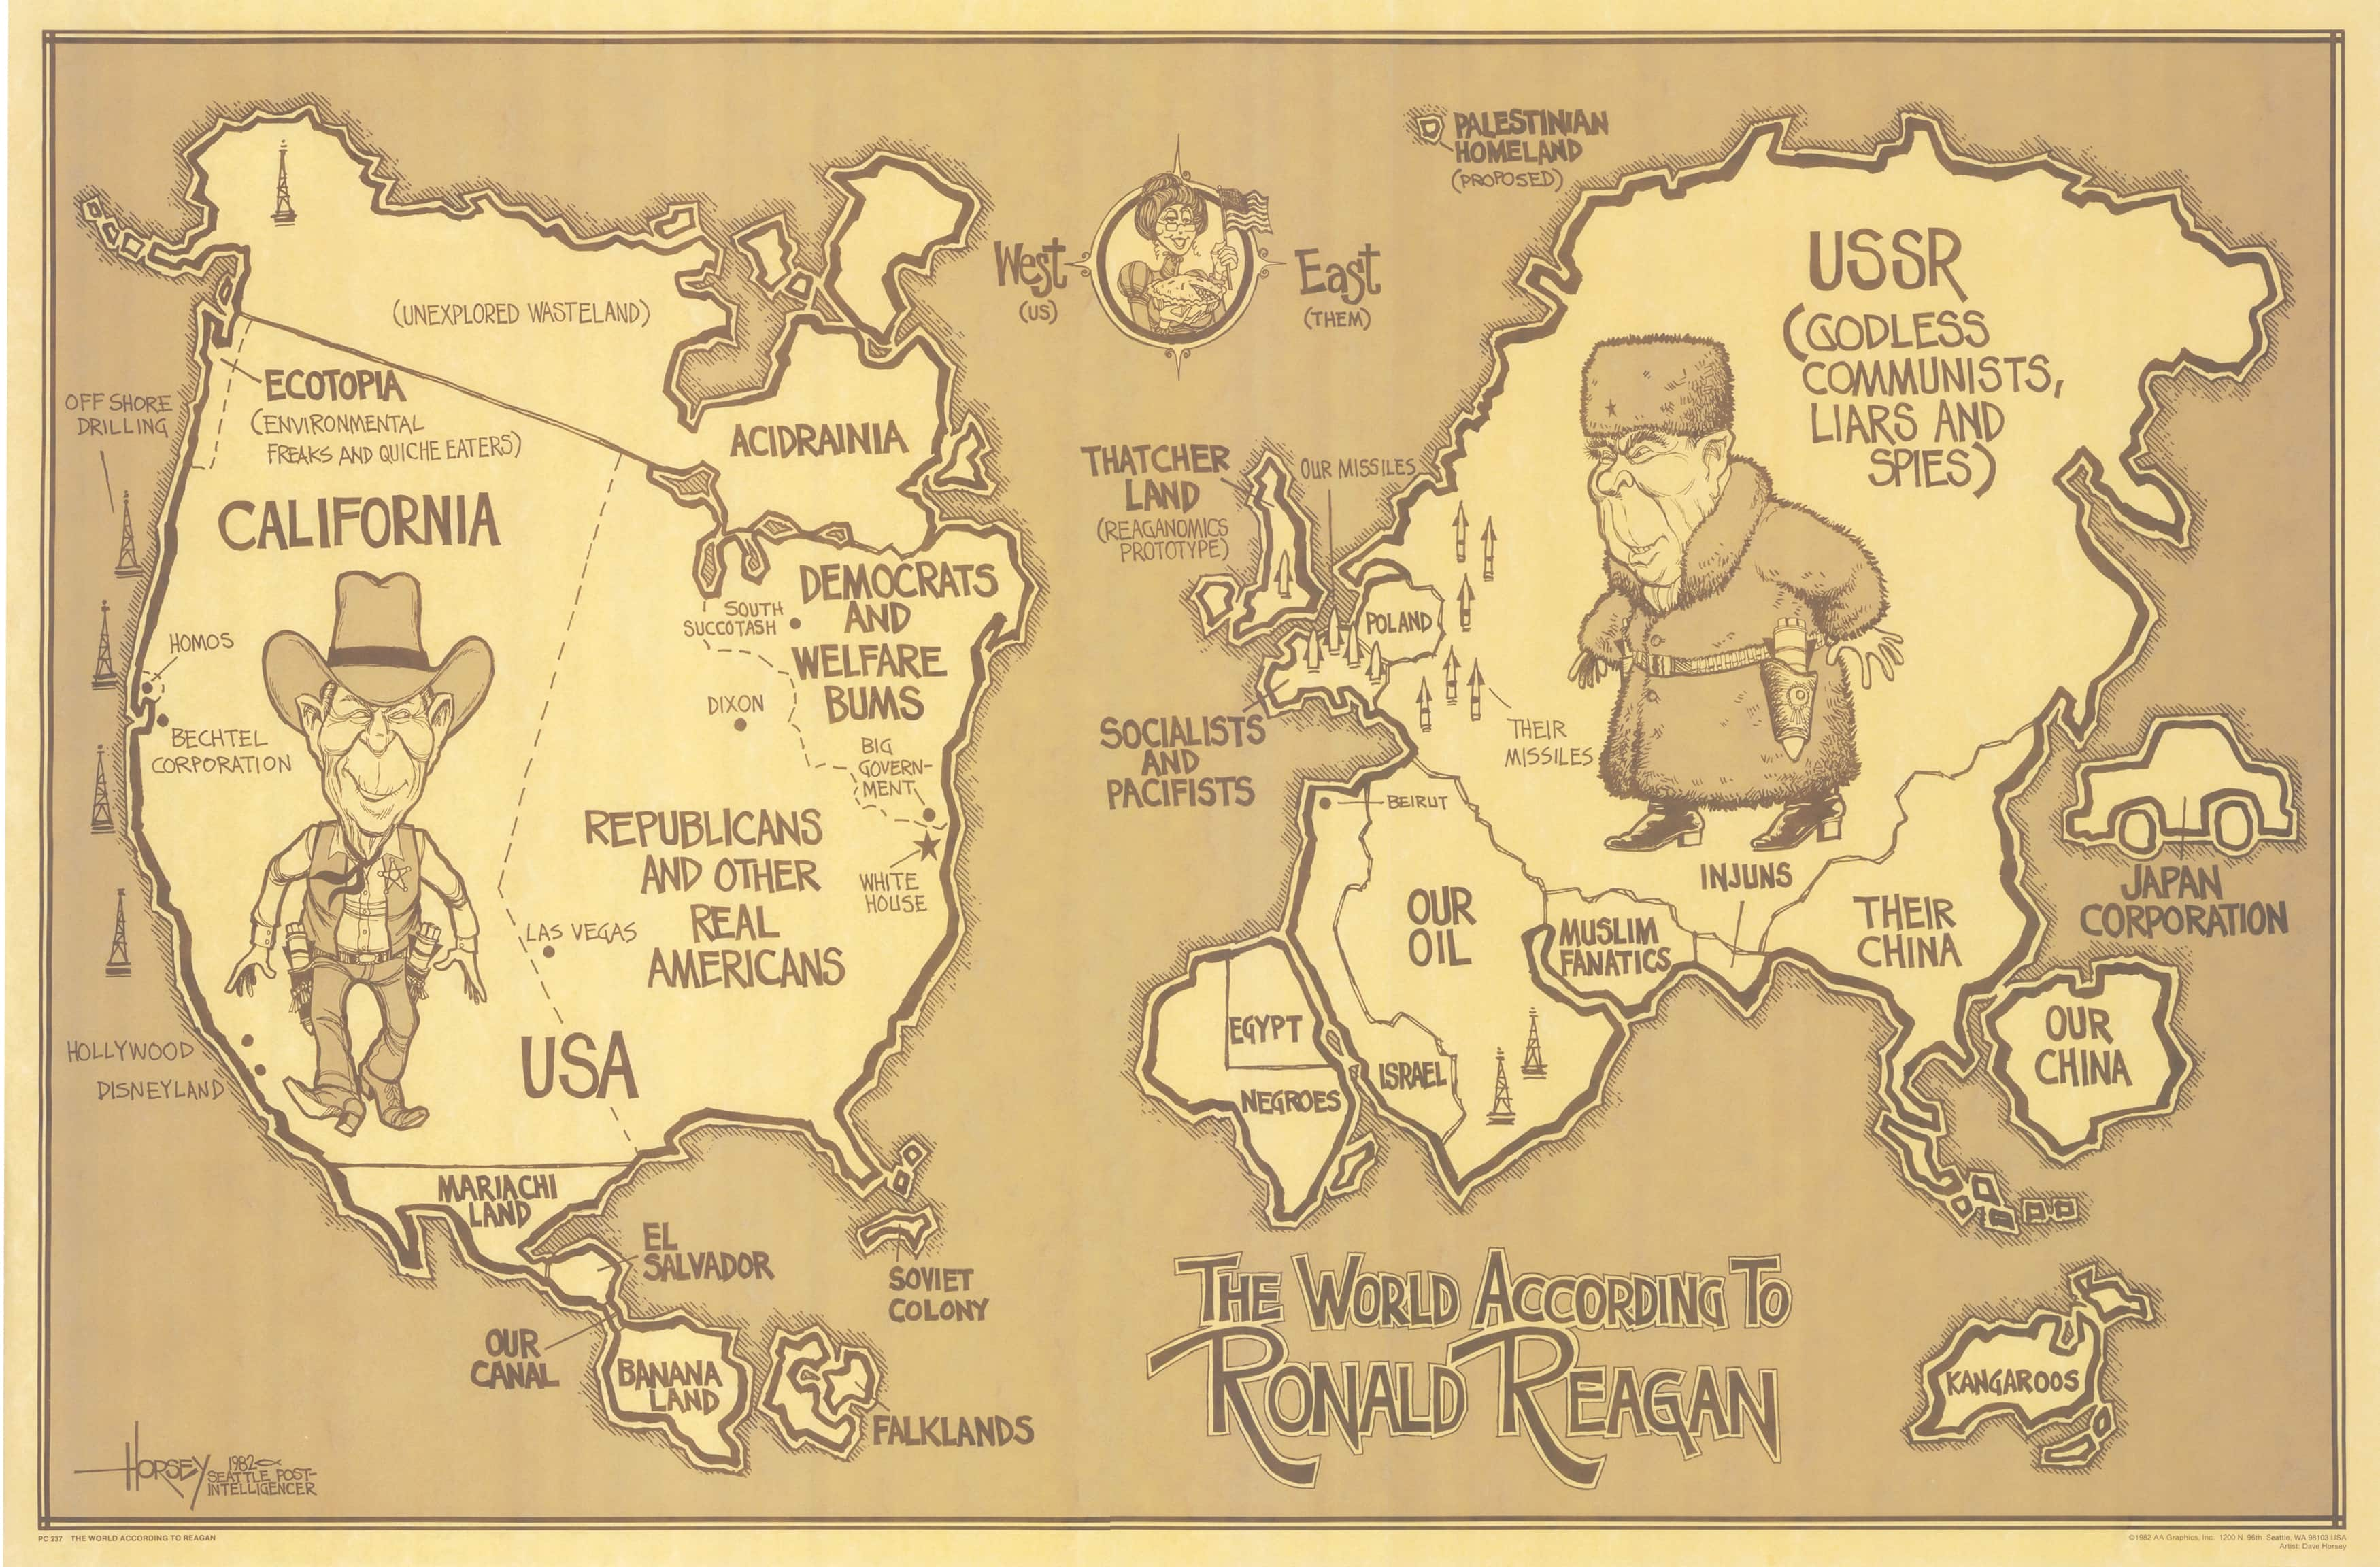 1982 david horsey map of the world according to ronald